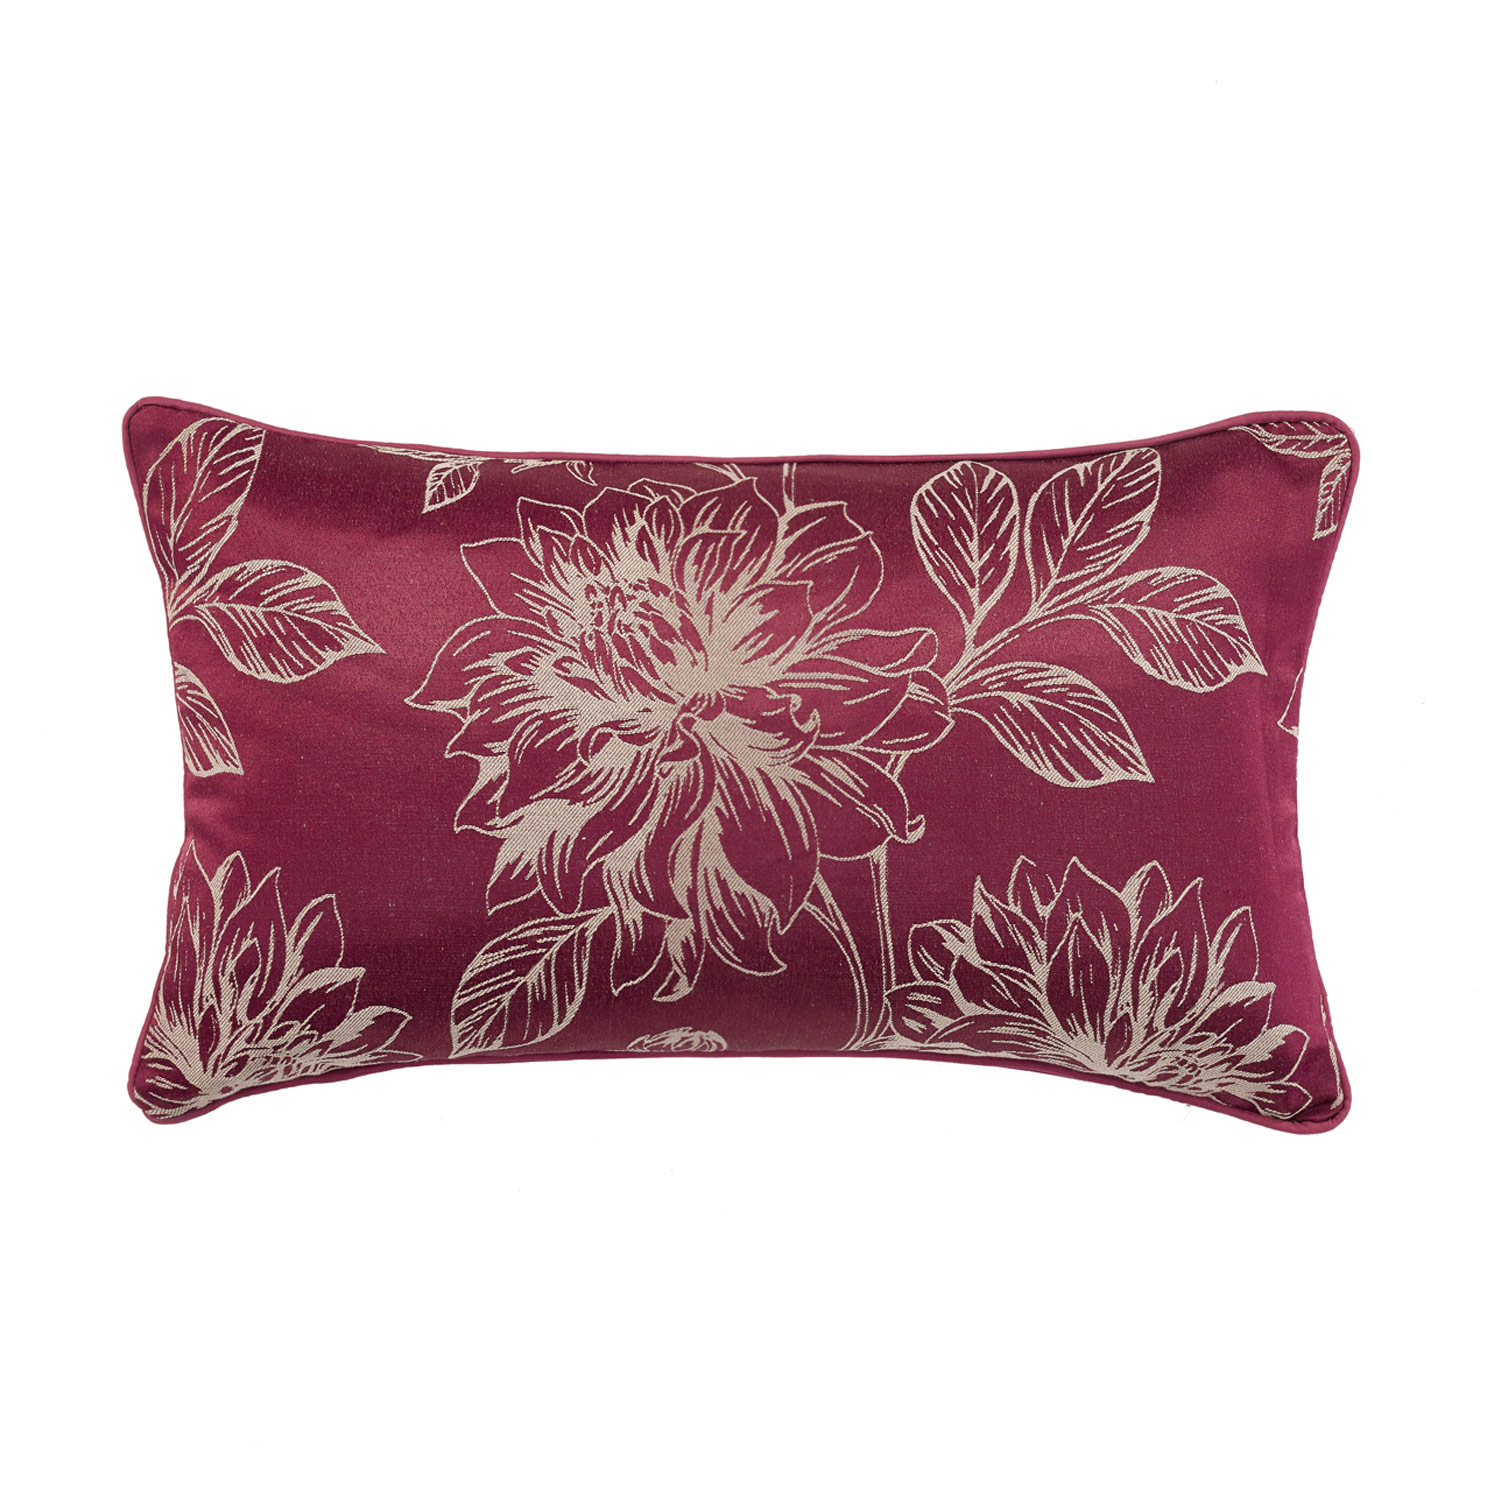 Stockists of Annabelle Raspberry Filled Boudoir Cushion